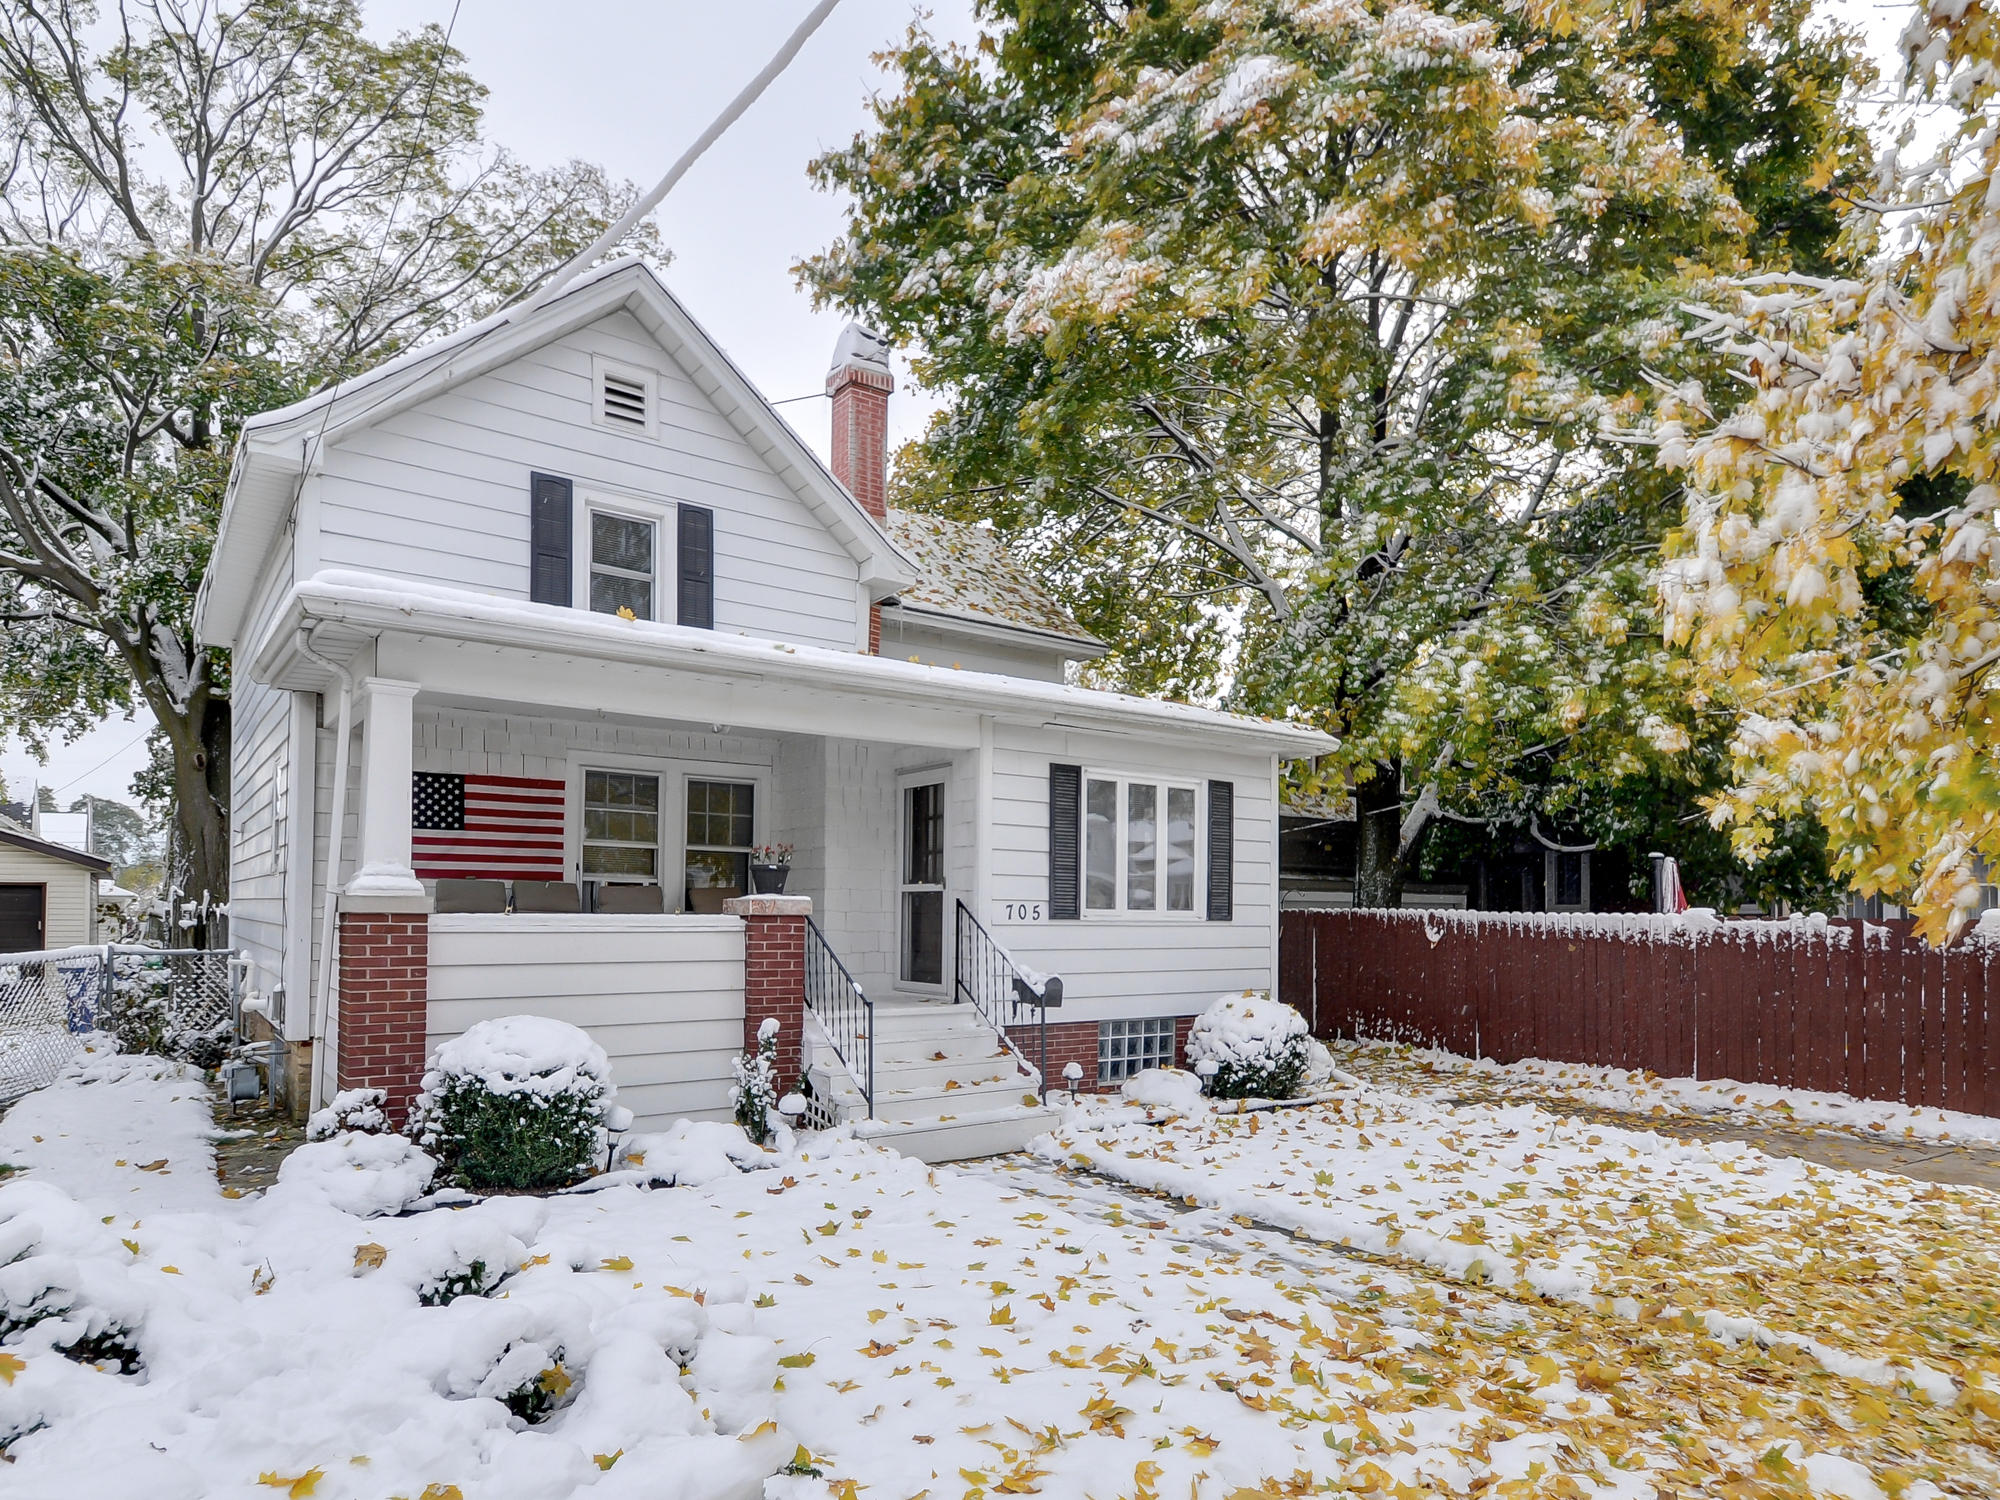 705 Hayes Ave, Racine, Wisconsin 53405, 3 Bedrooms Bedrooms, ,1 BathroomBathrooms,Single-Family,For Sale,Hayes Ave,1677001